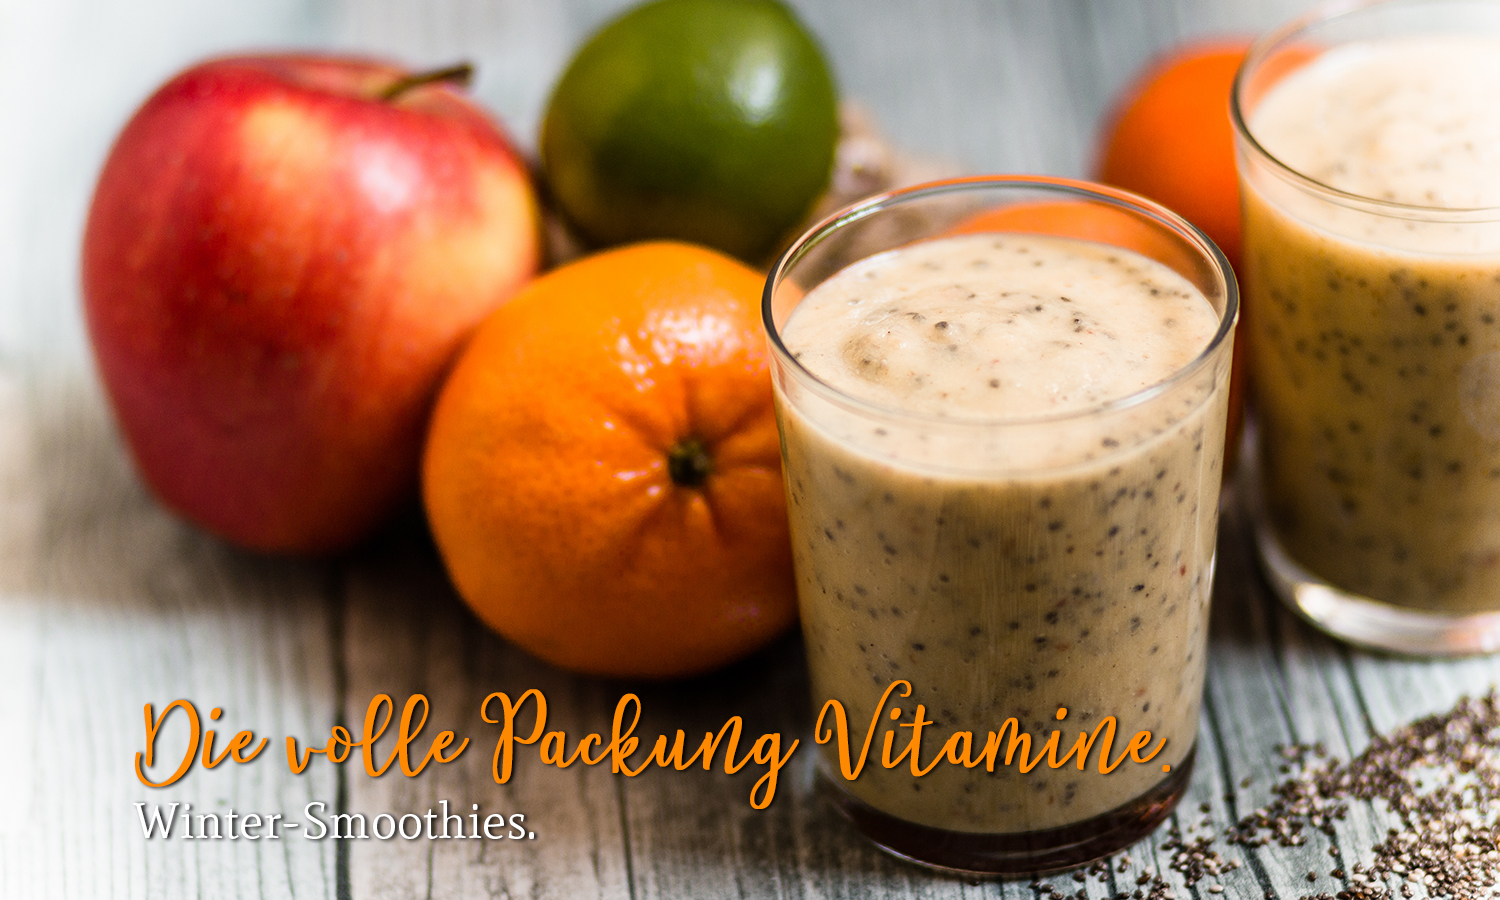 Die volle Packung Vitamine | Winter-Smoothies.